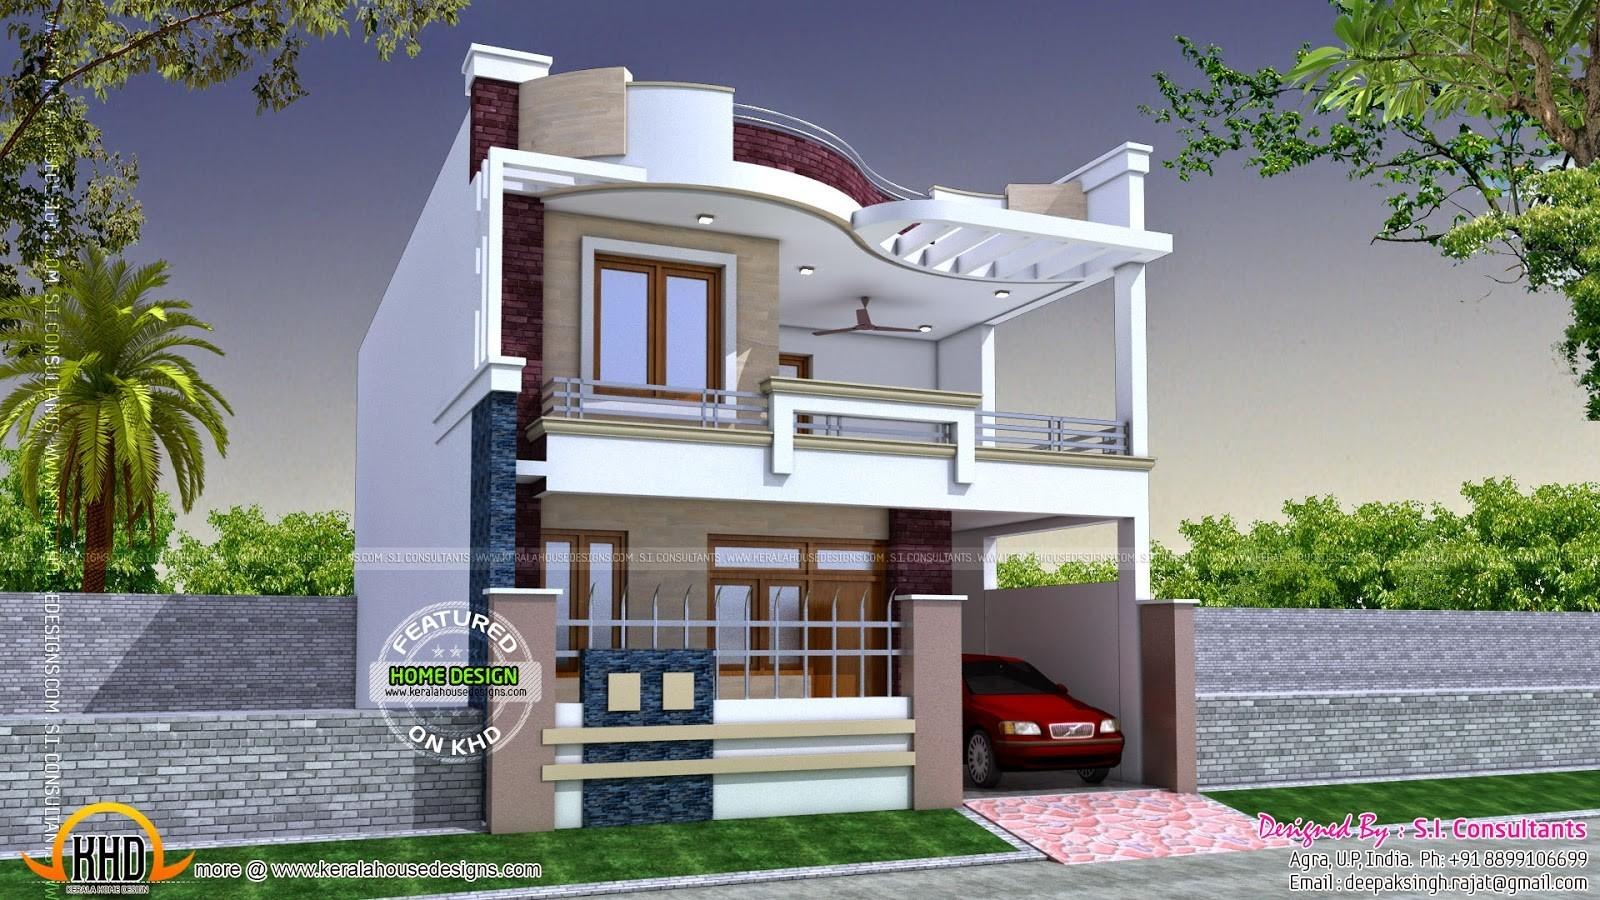 Home Cube Simple House Interesting Homes Design